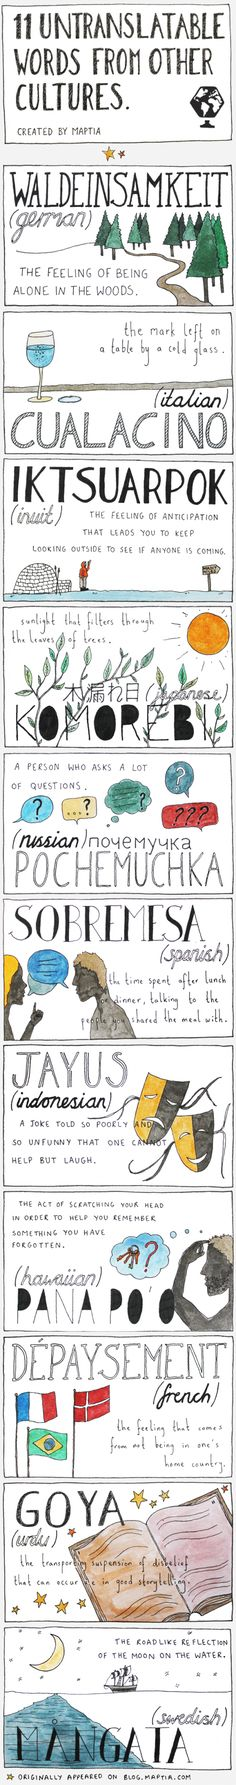 For fellow word-lovers... 11 Untranslatable Words From Other Cultures Infographic